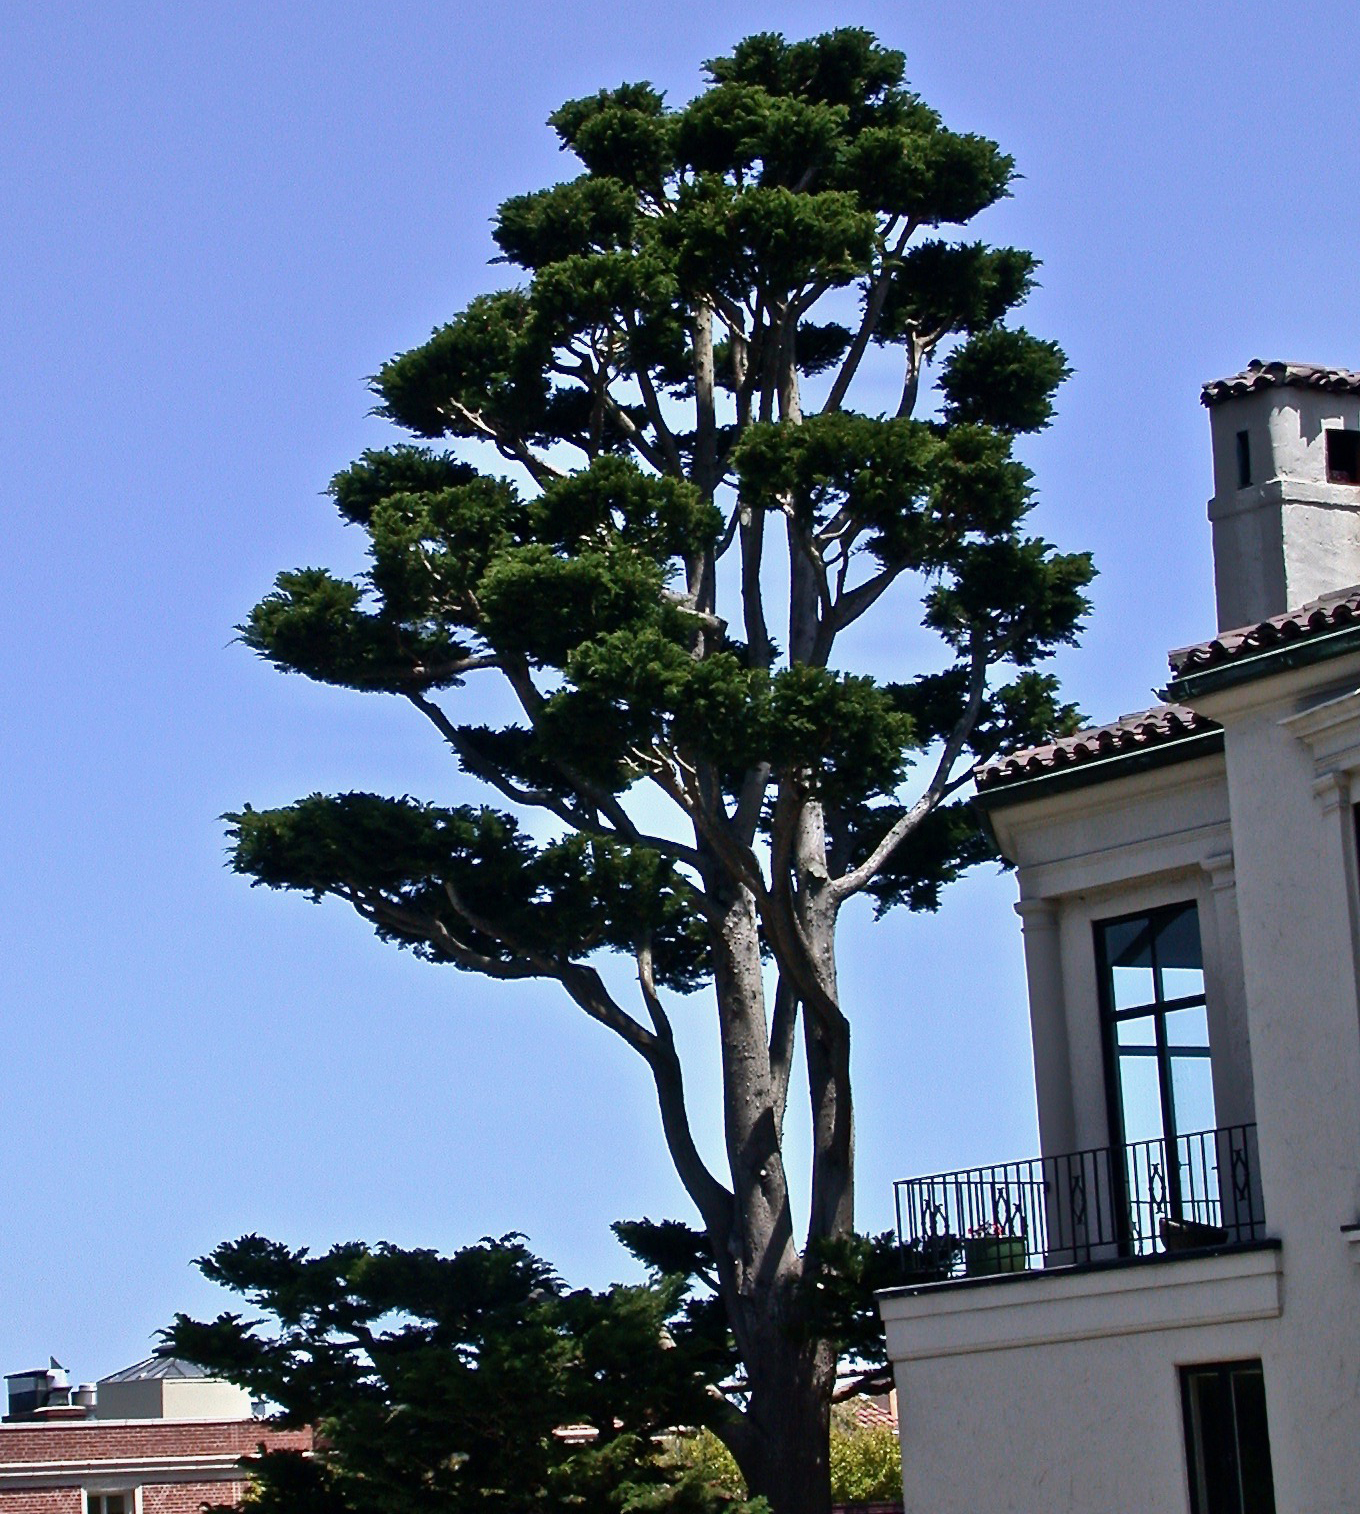 Monterey Cypress: Cloud Pruning (Niwaki)